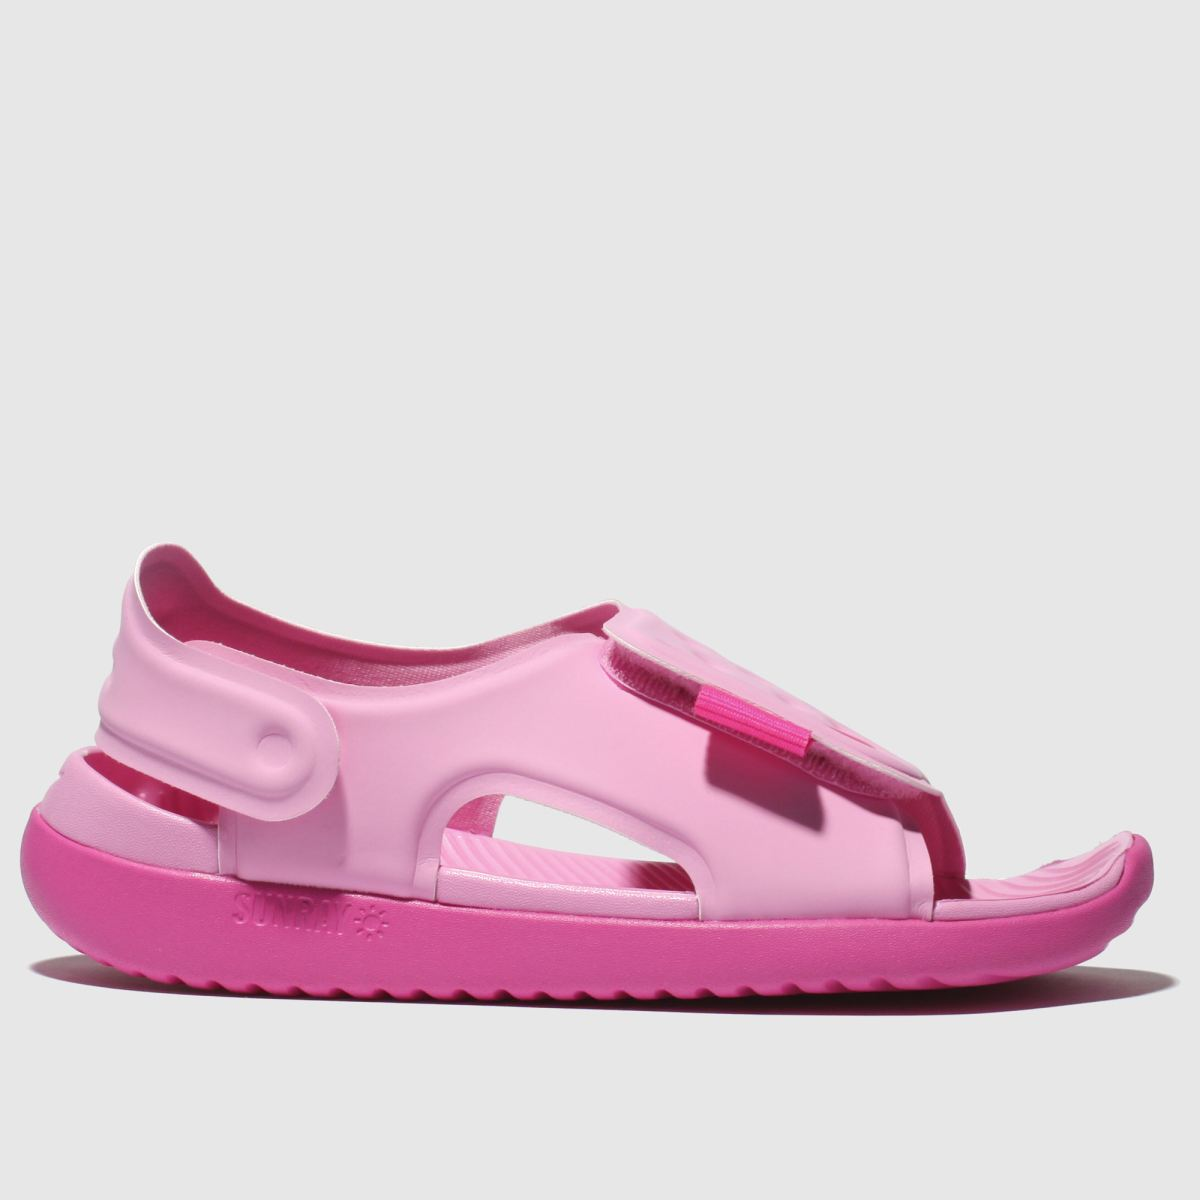 081386cbf4a2 Nike Pale Pink Sunray Adjust 5 Trainers Toddler - Schuh at Westquay - Shop  Online